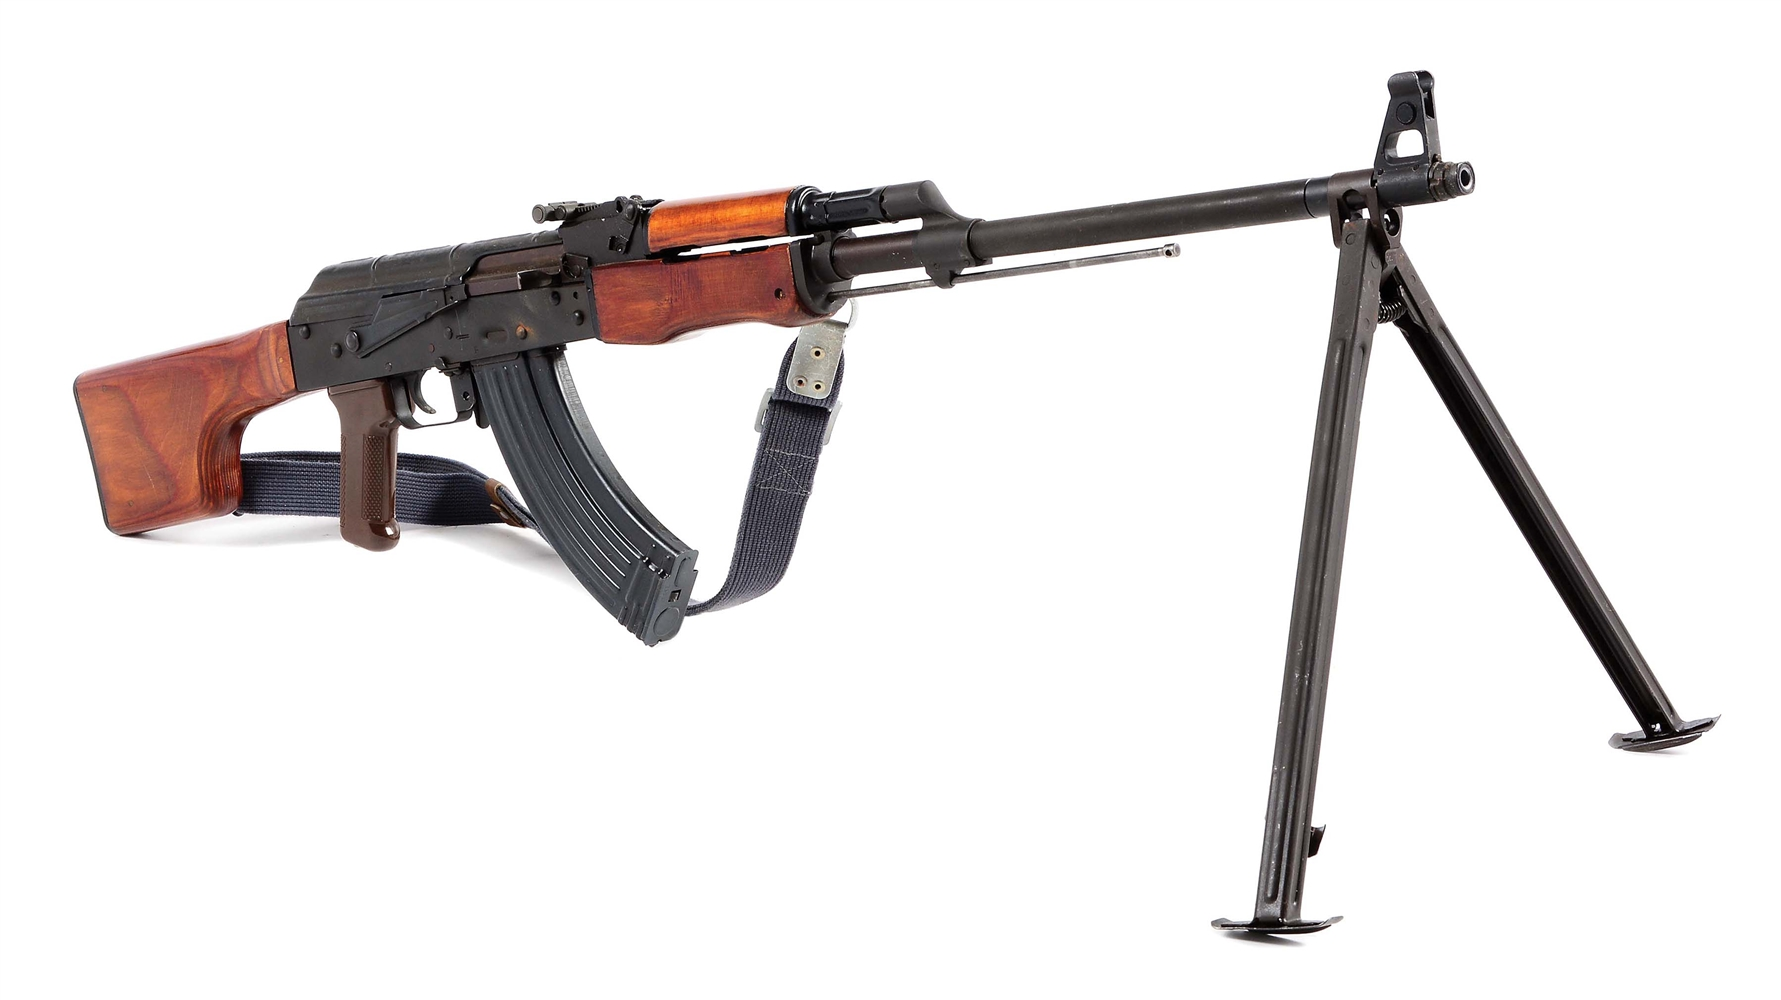 (M) Hess Arms M-47/ RPK-C Semi-Automatic Rifle.